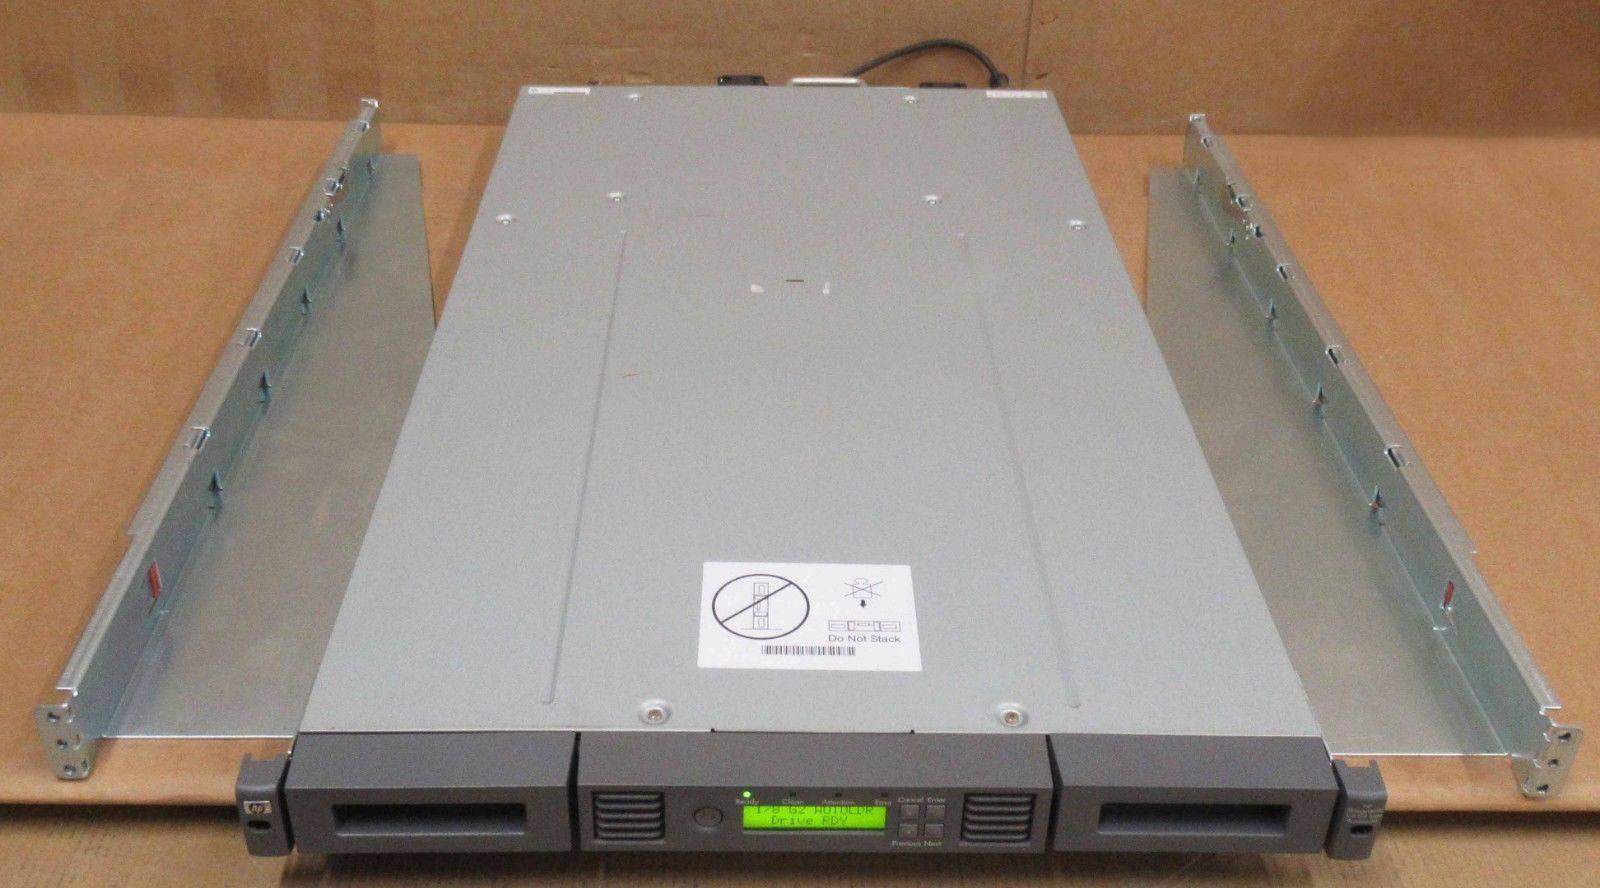 HP STORAGEWORKS 1 8 G2 TAPE AUTOLOADER DOWNLOAD DRIVER